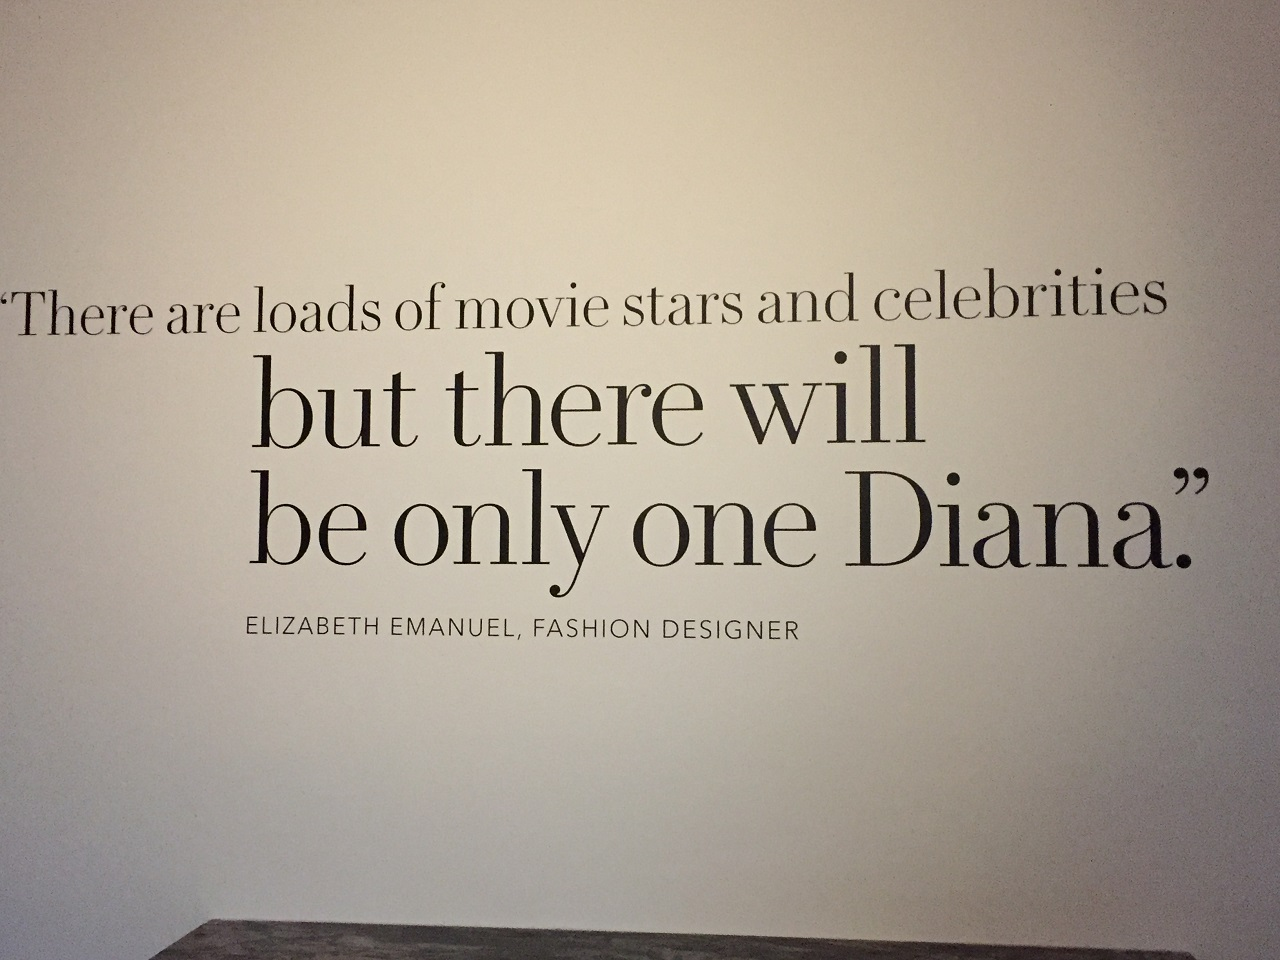 London Kensington Palace Exhibit Diana Her Fashion Story Philatravelgirl